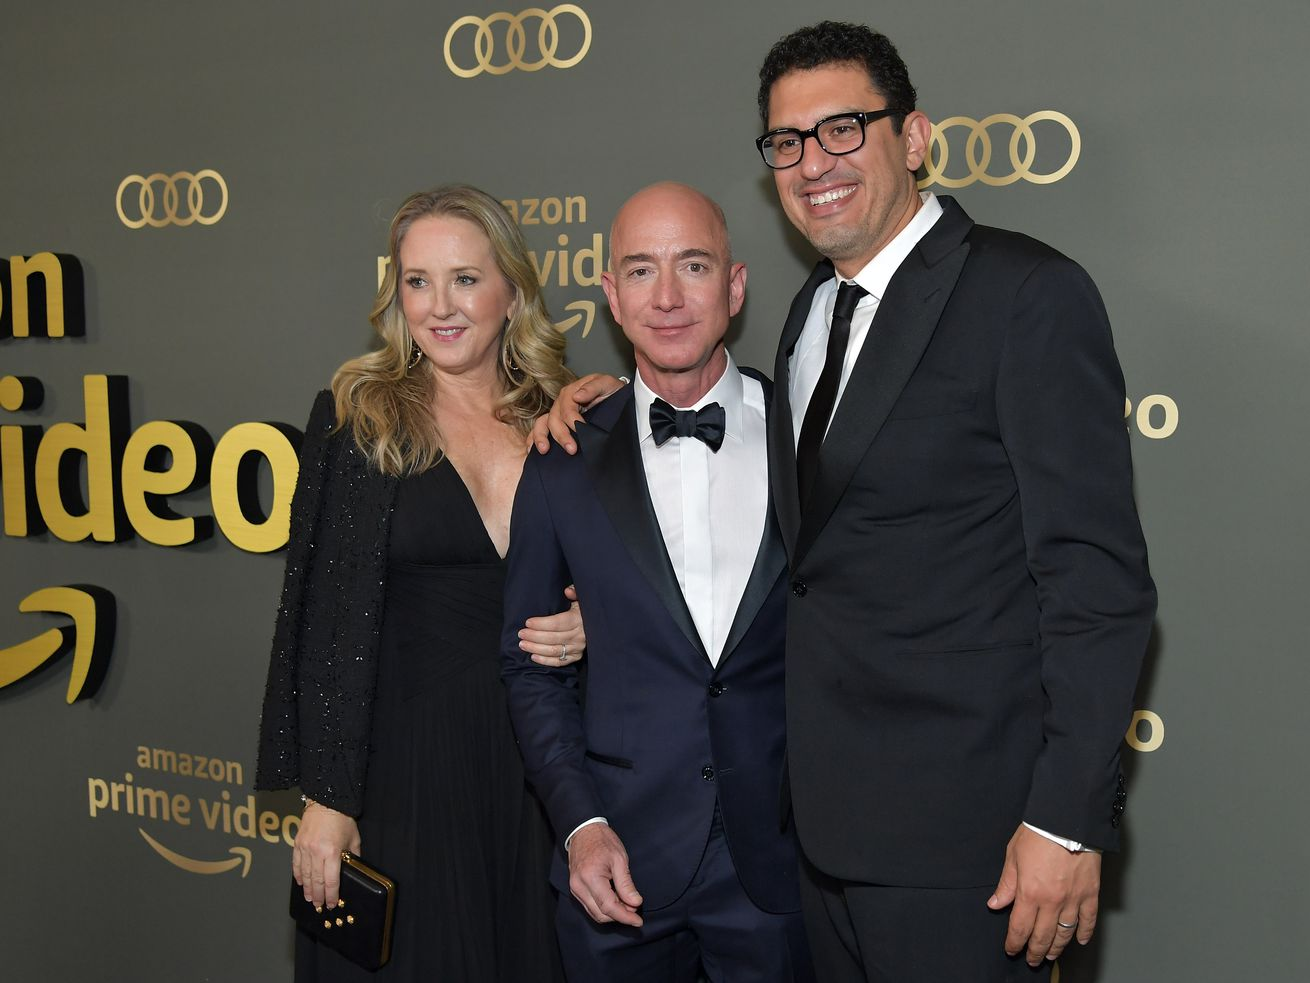 Amazon Studios chief Jennifer Salke, Amazon CEO Jeff Bezos, and <em>Homecoming</em> director Sam Esmail at a Golden Globes afterparty on January 6, 2019.